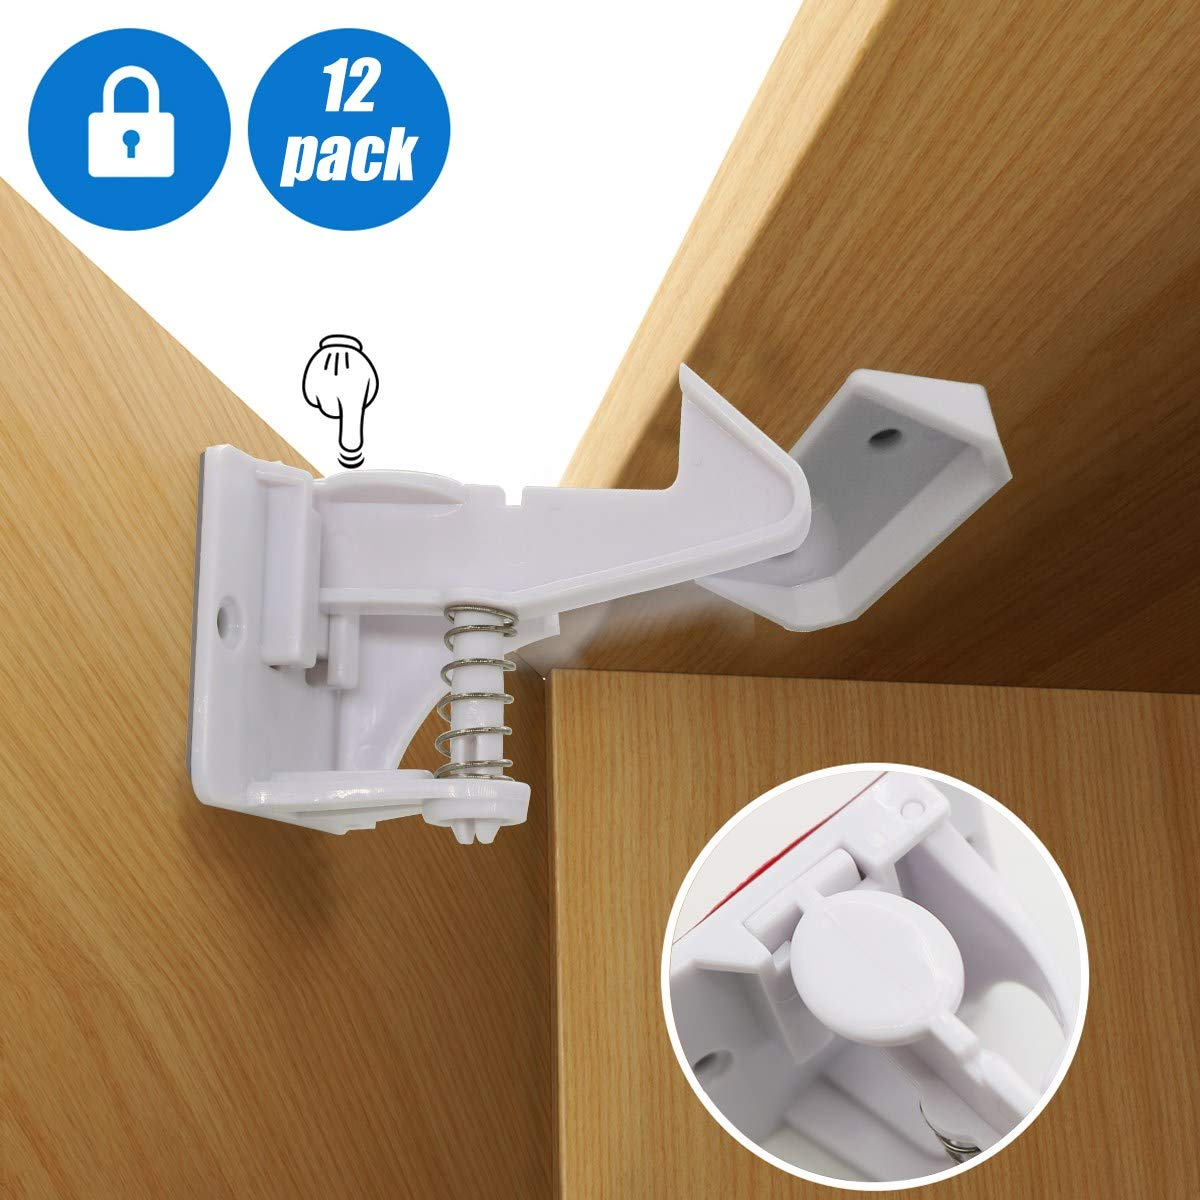 Cabinet Locks Child Safety Latches, 12 Pack Invisible Design Baby Proofing Cabinets Lock and Drawers Latch with Easy 3M Adhesive NO Tools and Drilling Needed